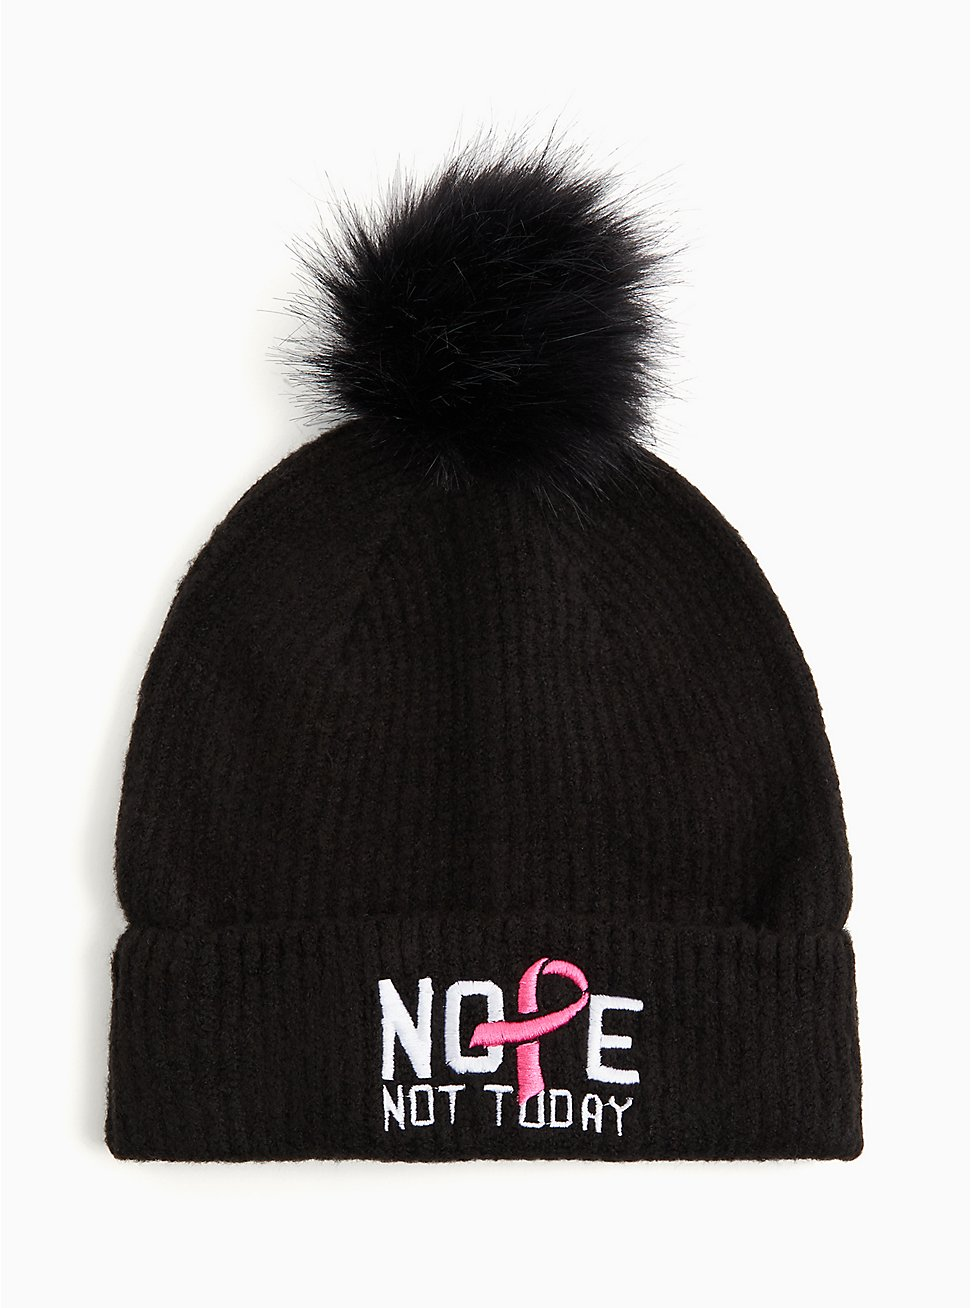 Breast Cancer Awareness - Nope Not Today Black Pom Pom Beanie, , hi-res